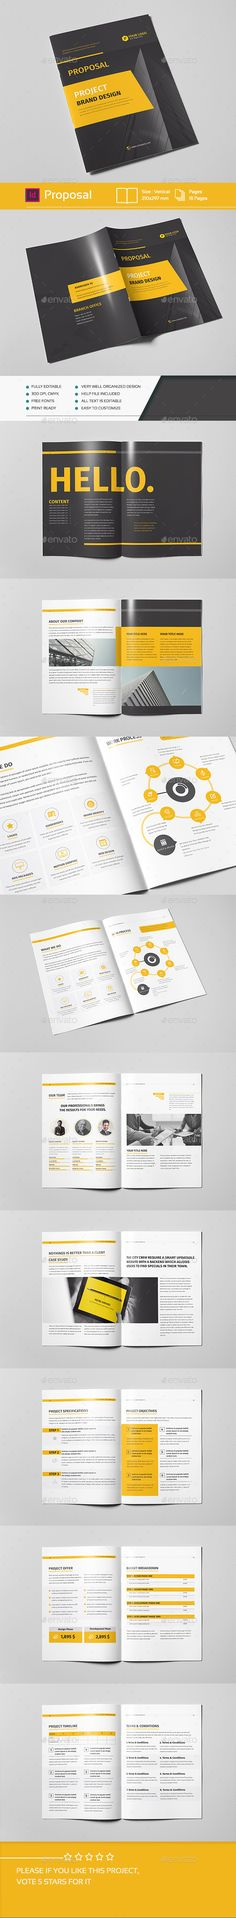 Proposal Template InDesign INDD #design Download: http://graphicriver.net/item/proposal/14472424?ref=ksioks